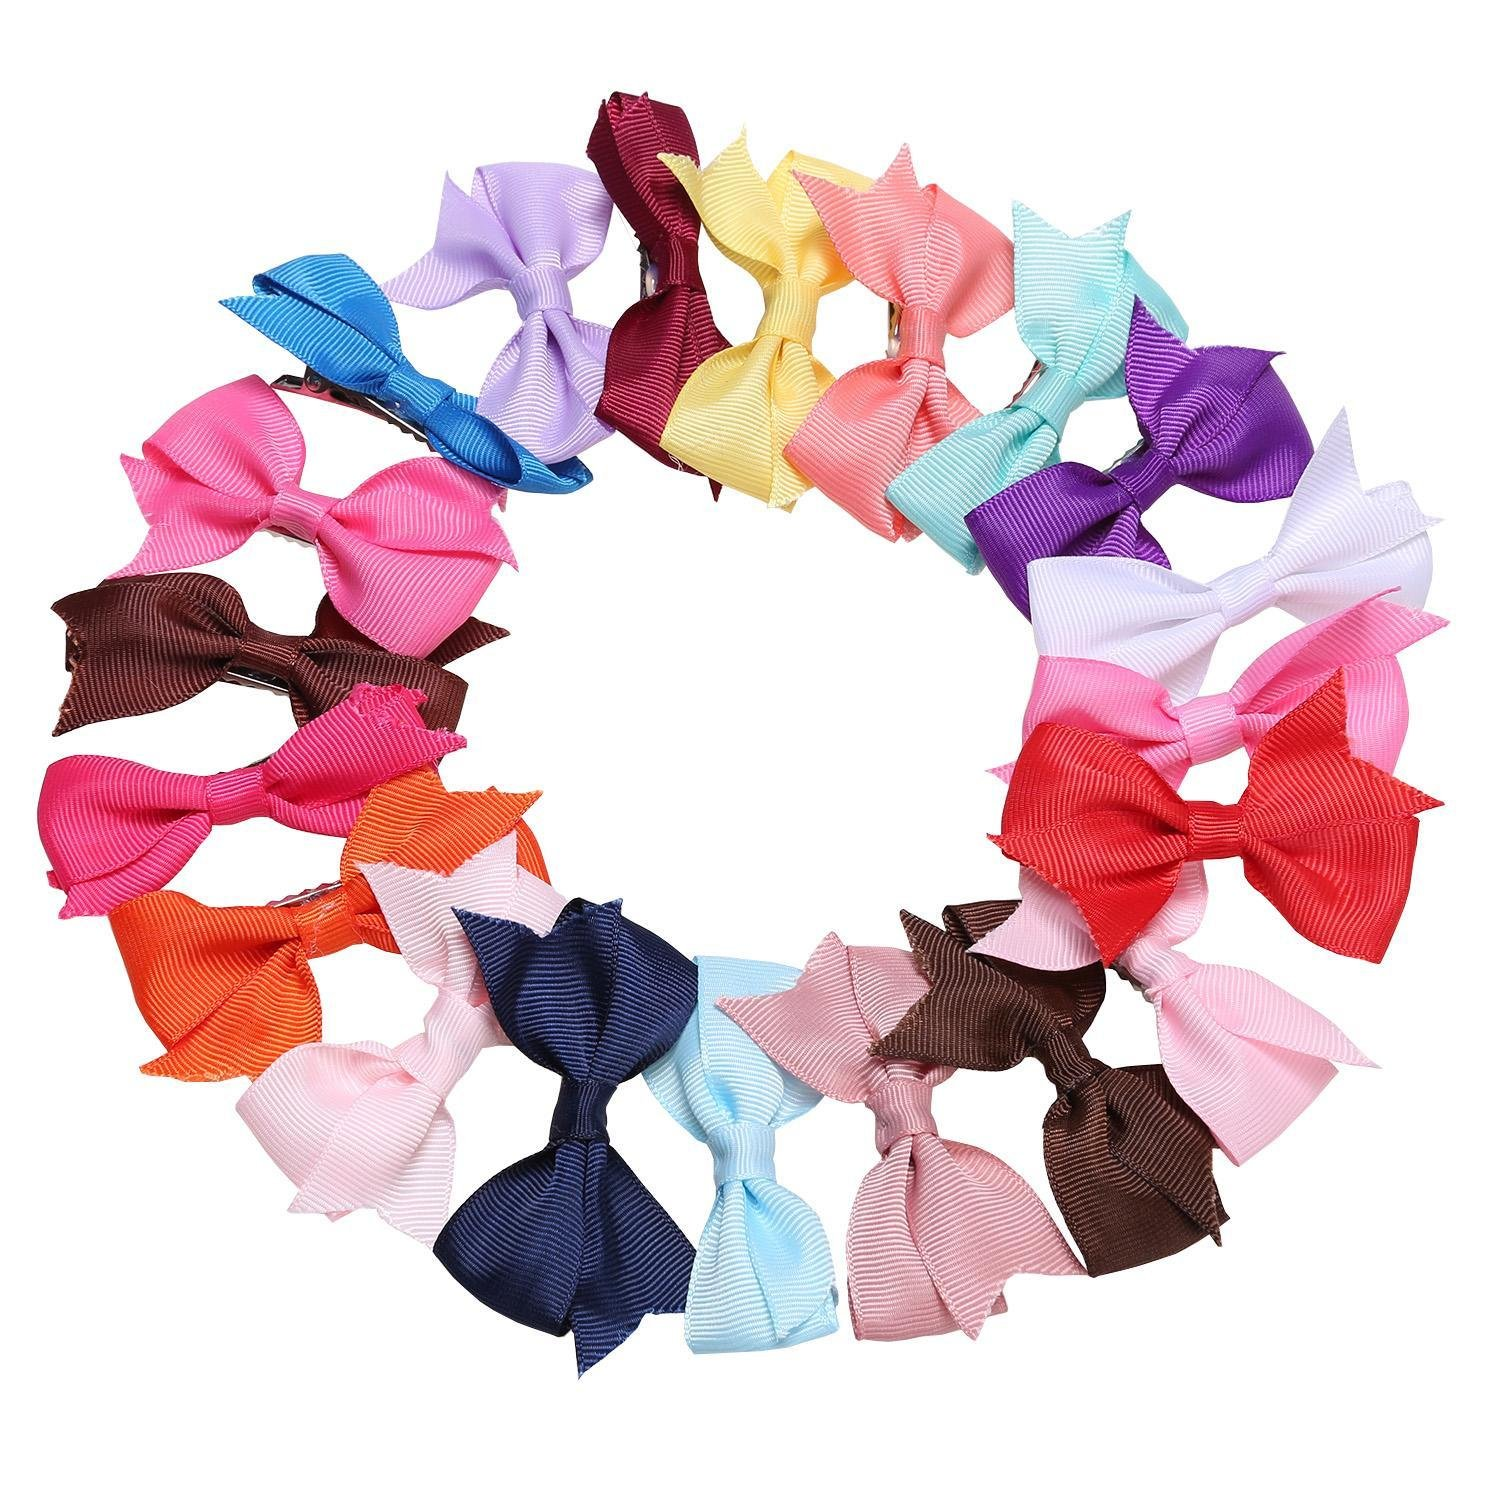 Ruior 20 Colors New Alligator Clips Girls Bow Ribbon Kids Sides Accessories Hair Clip Hair Accessories